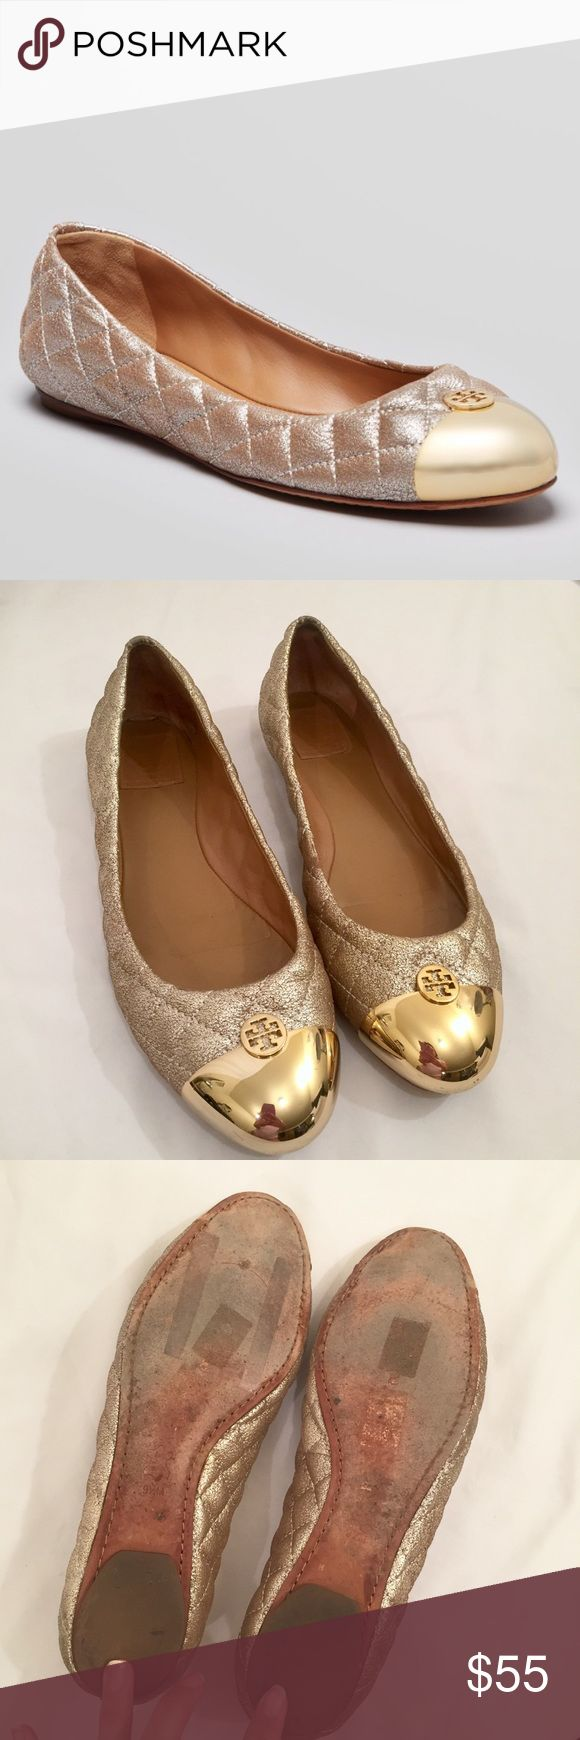 Tory Burch Gold Cap Toe Flats Gently used Tory Burch flats. Overall in good condition with some jean dye transfer on the heel, but the picture makes it look darker than it actually is:( gorgeous shoes though! Size 9 1/2 Tory Burch Shoes Flats & Loafers